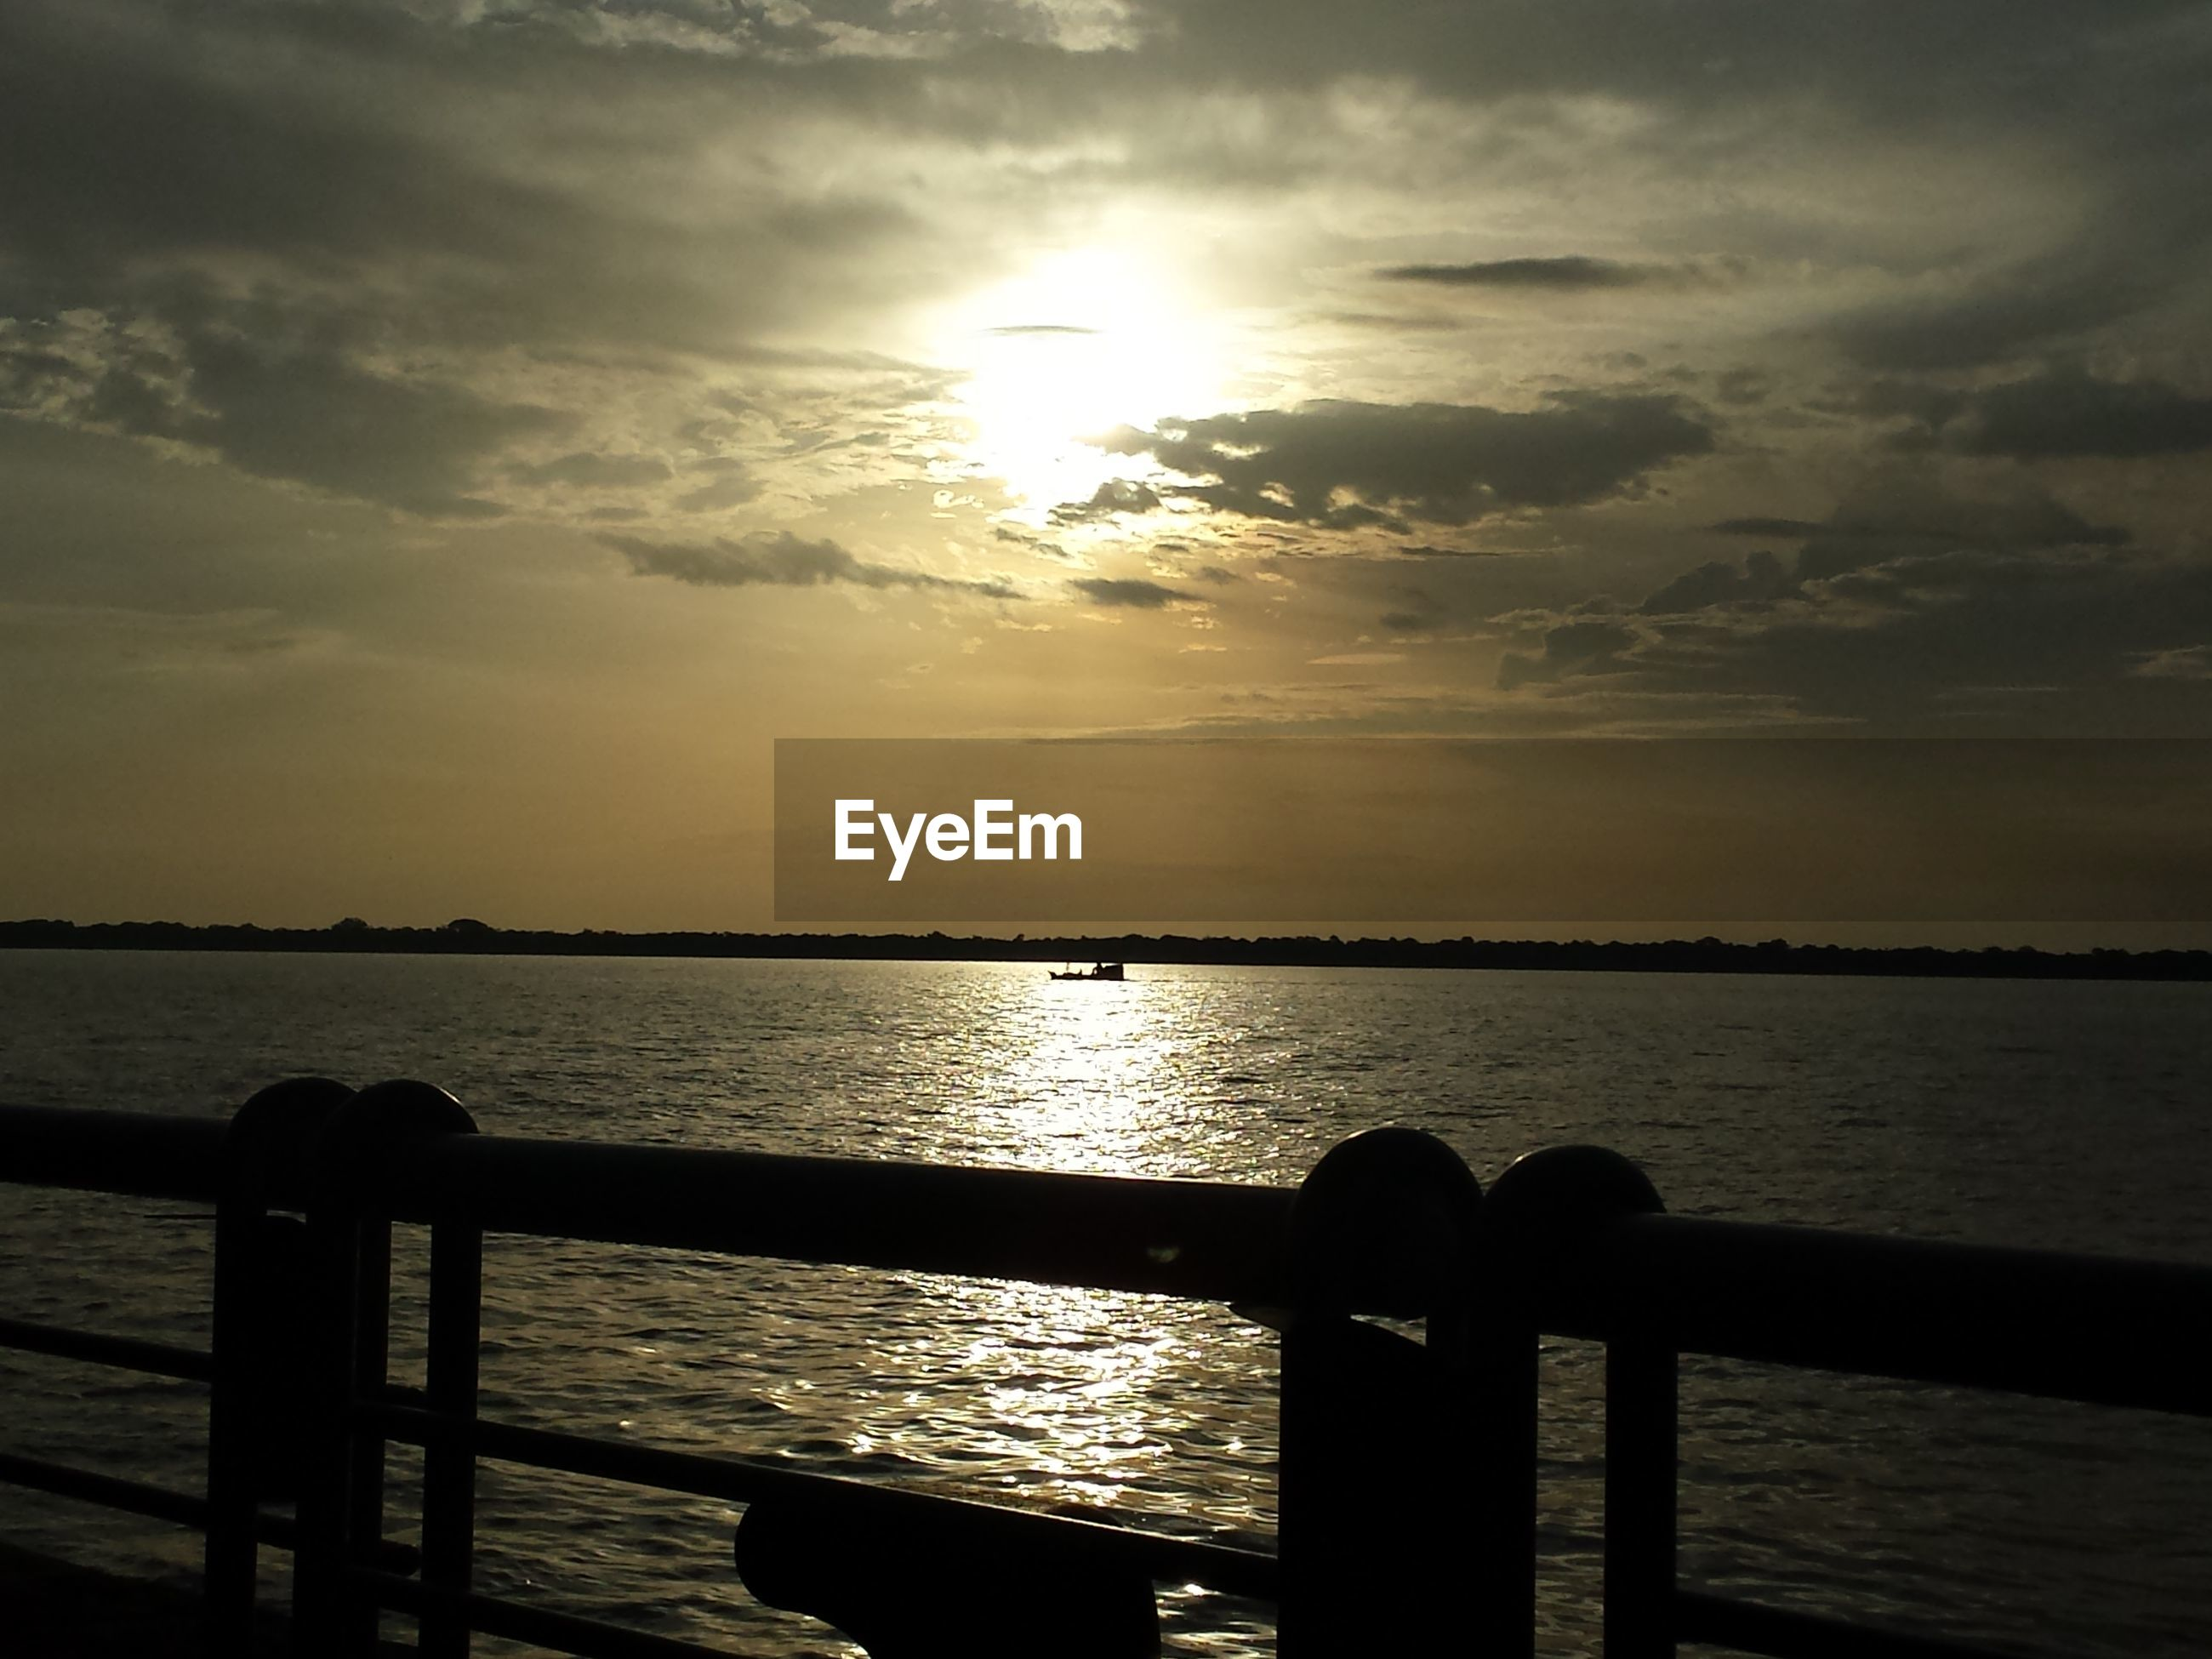 water, sunset, sea, sky, tranquility, tranquil scene, railing, scenics, sun, beauty in nature, silhouette, pier, horizon over water, nature, idyllic, cloud - sky, sunlight, wood - material, jetty, rippled